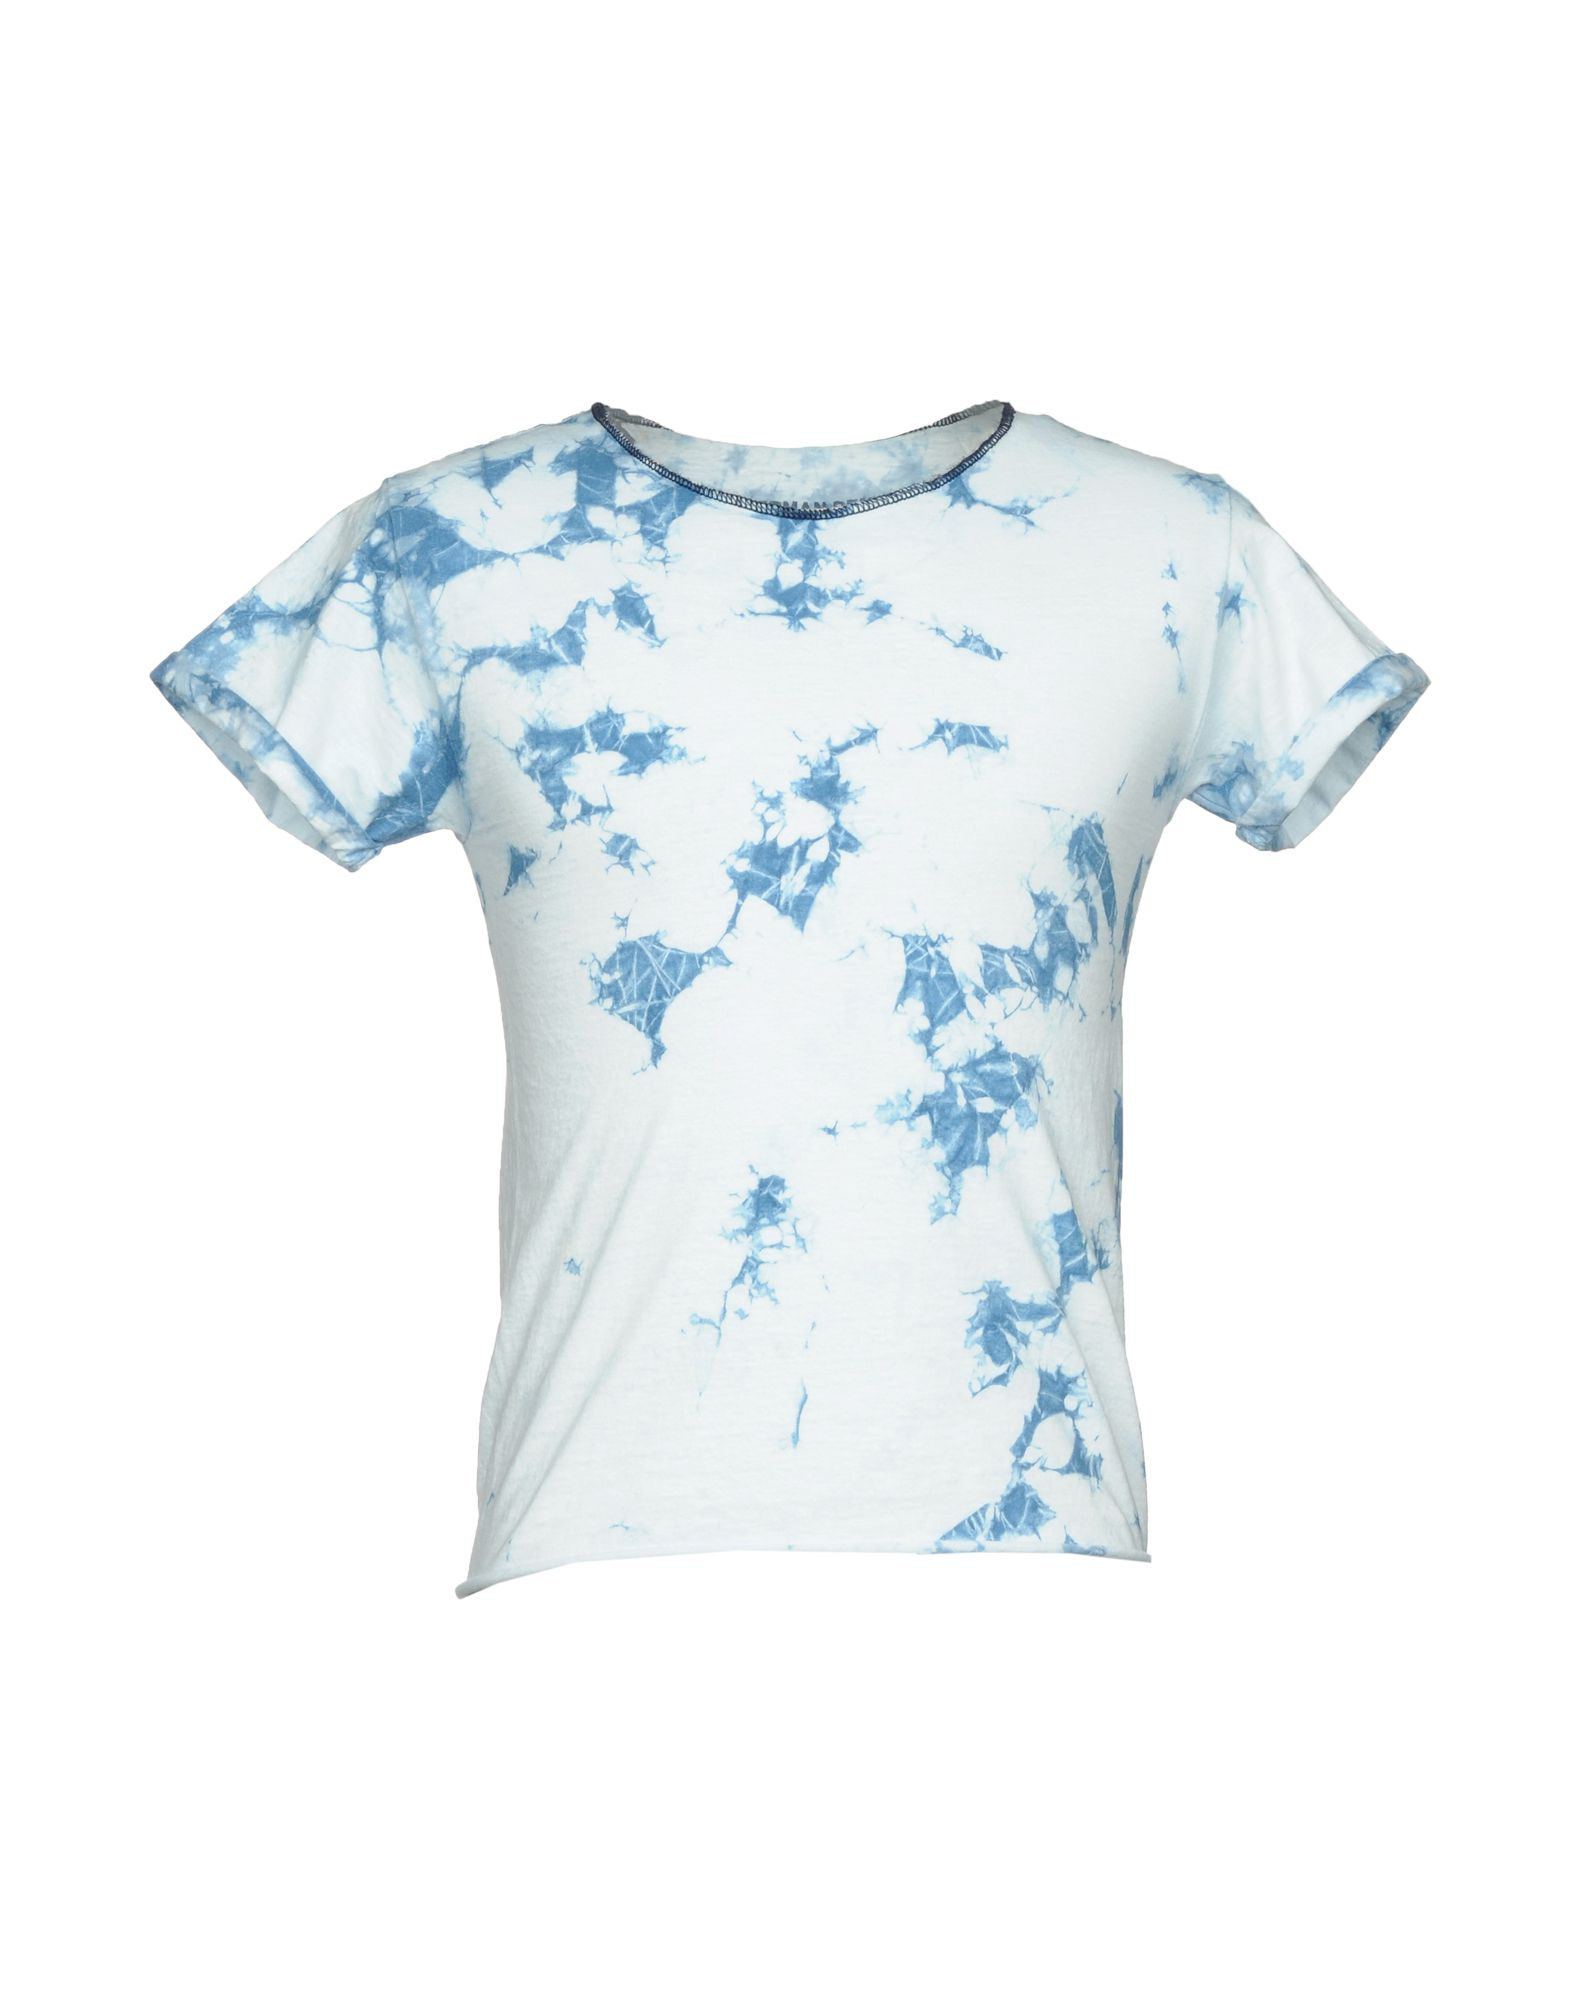 RON HERMAN T-Shirt in Sky Blue